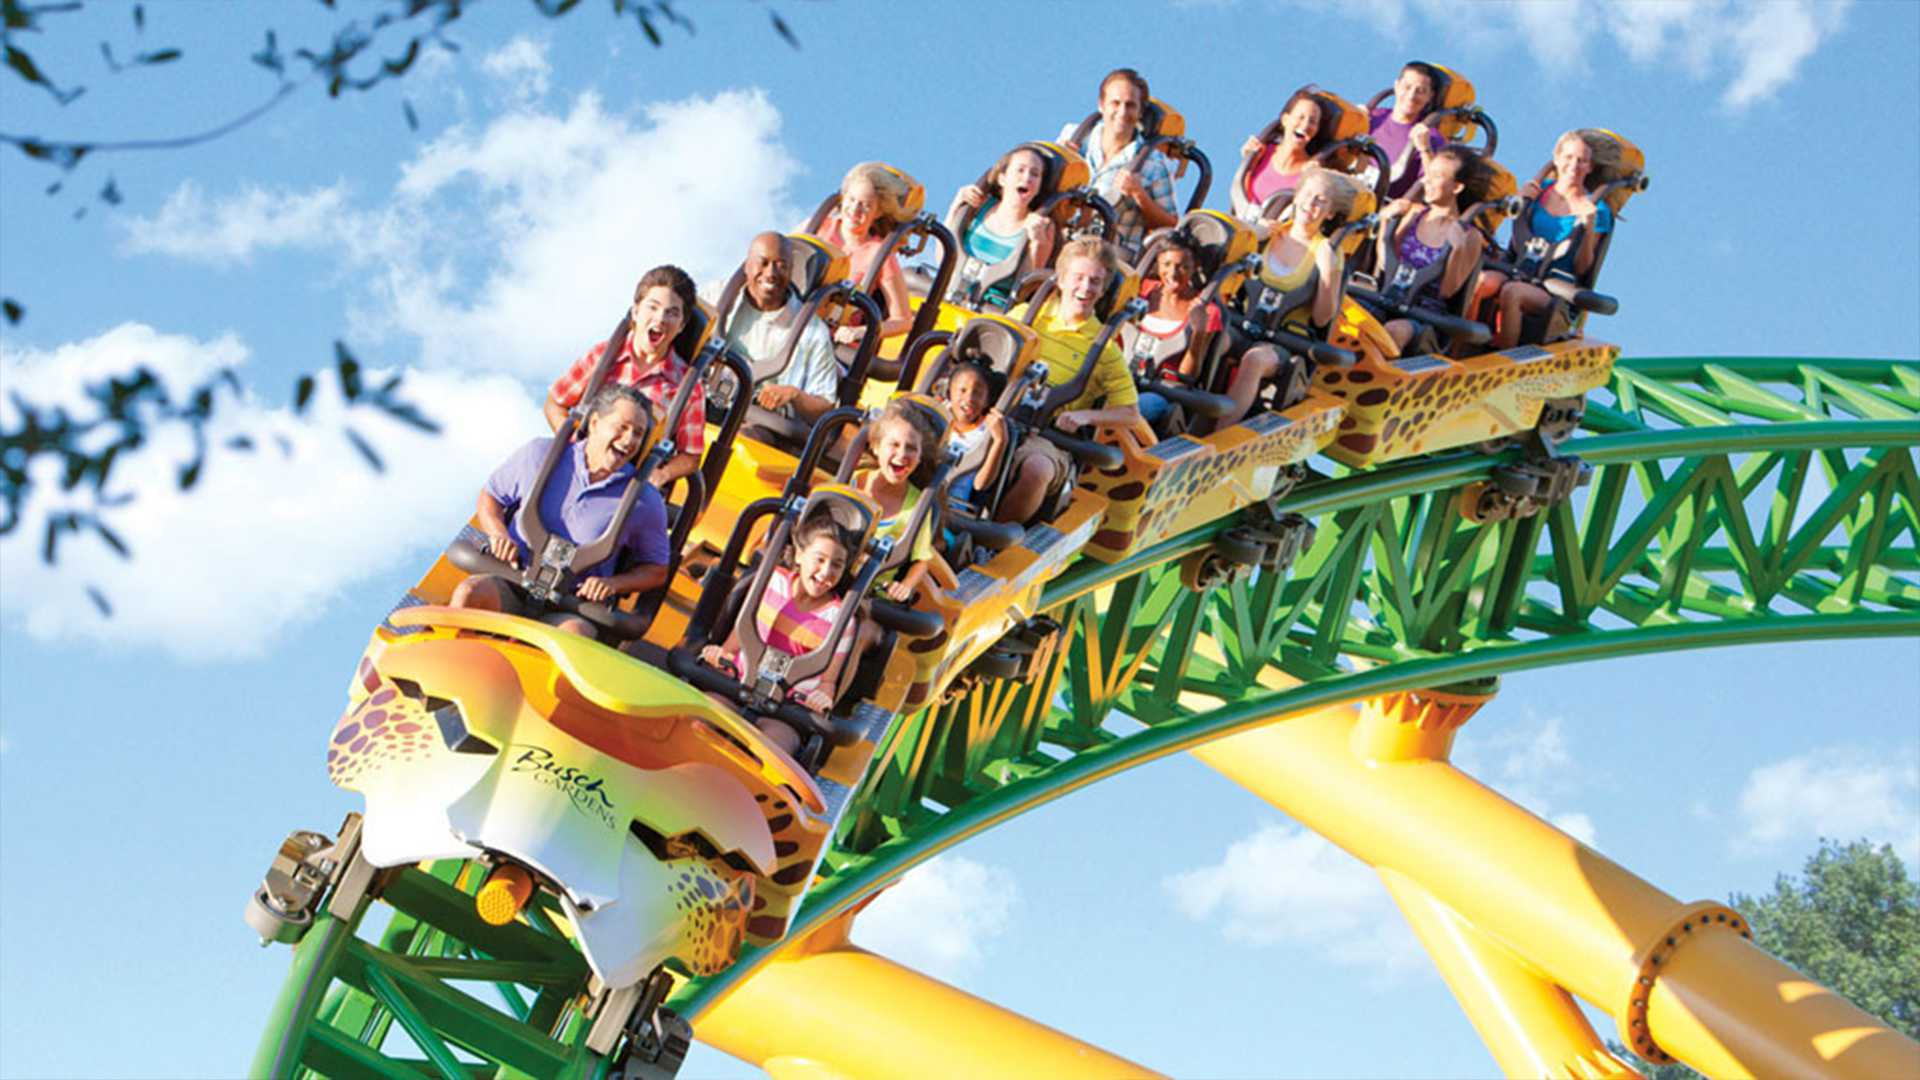 Busch gardens tampa fl tickets orlando destination guide How far is busch gardens from orlando